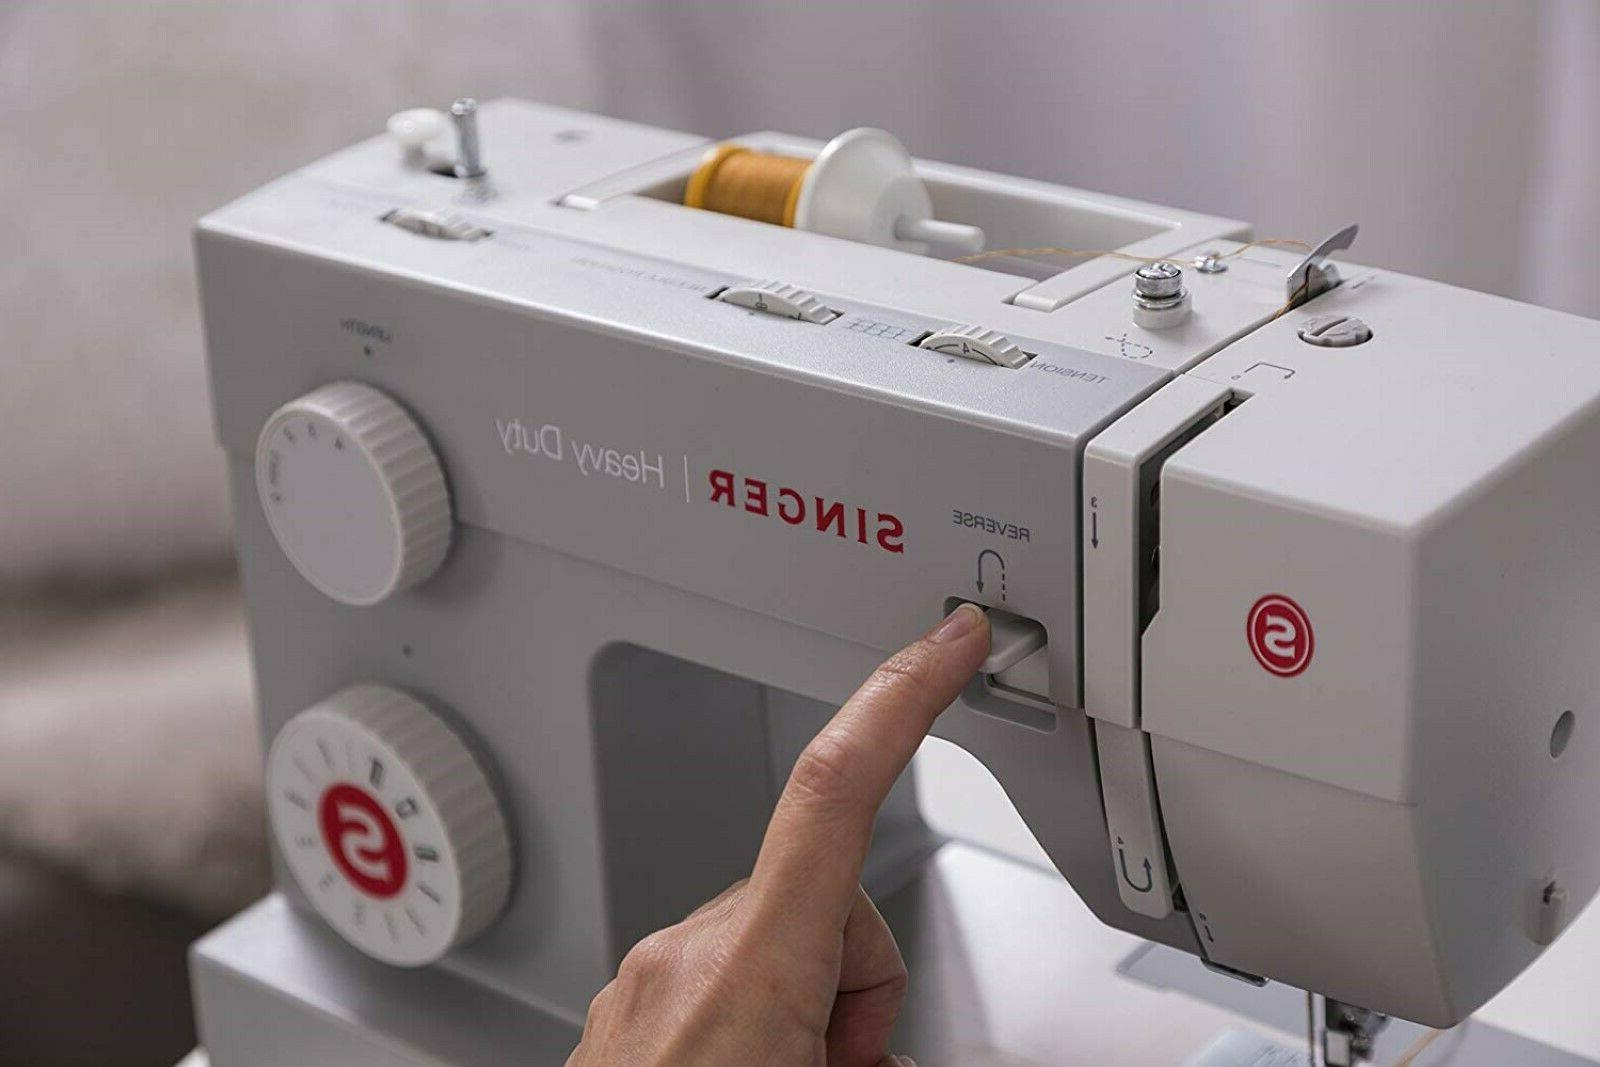 Singer Heavy Machine Industrial Embroidery